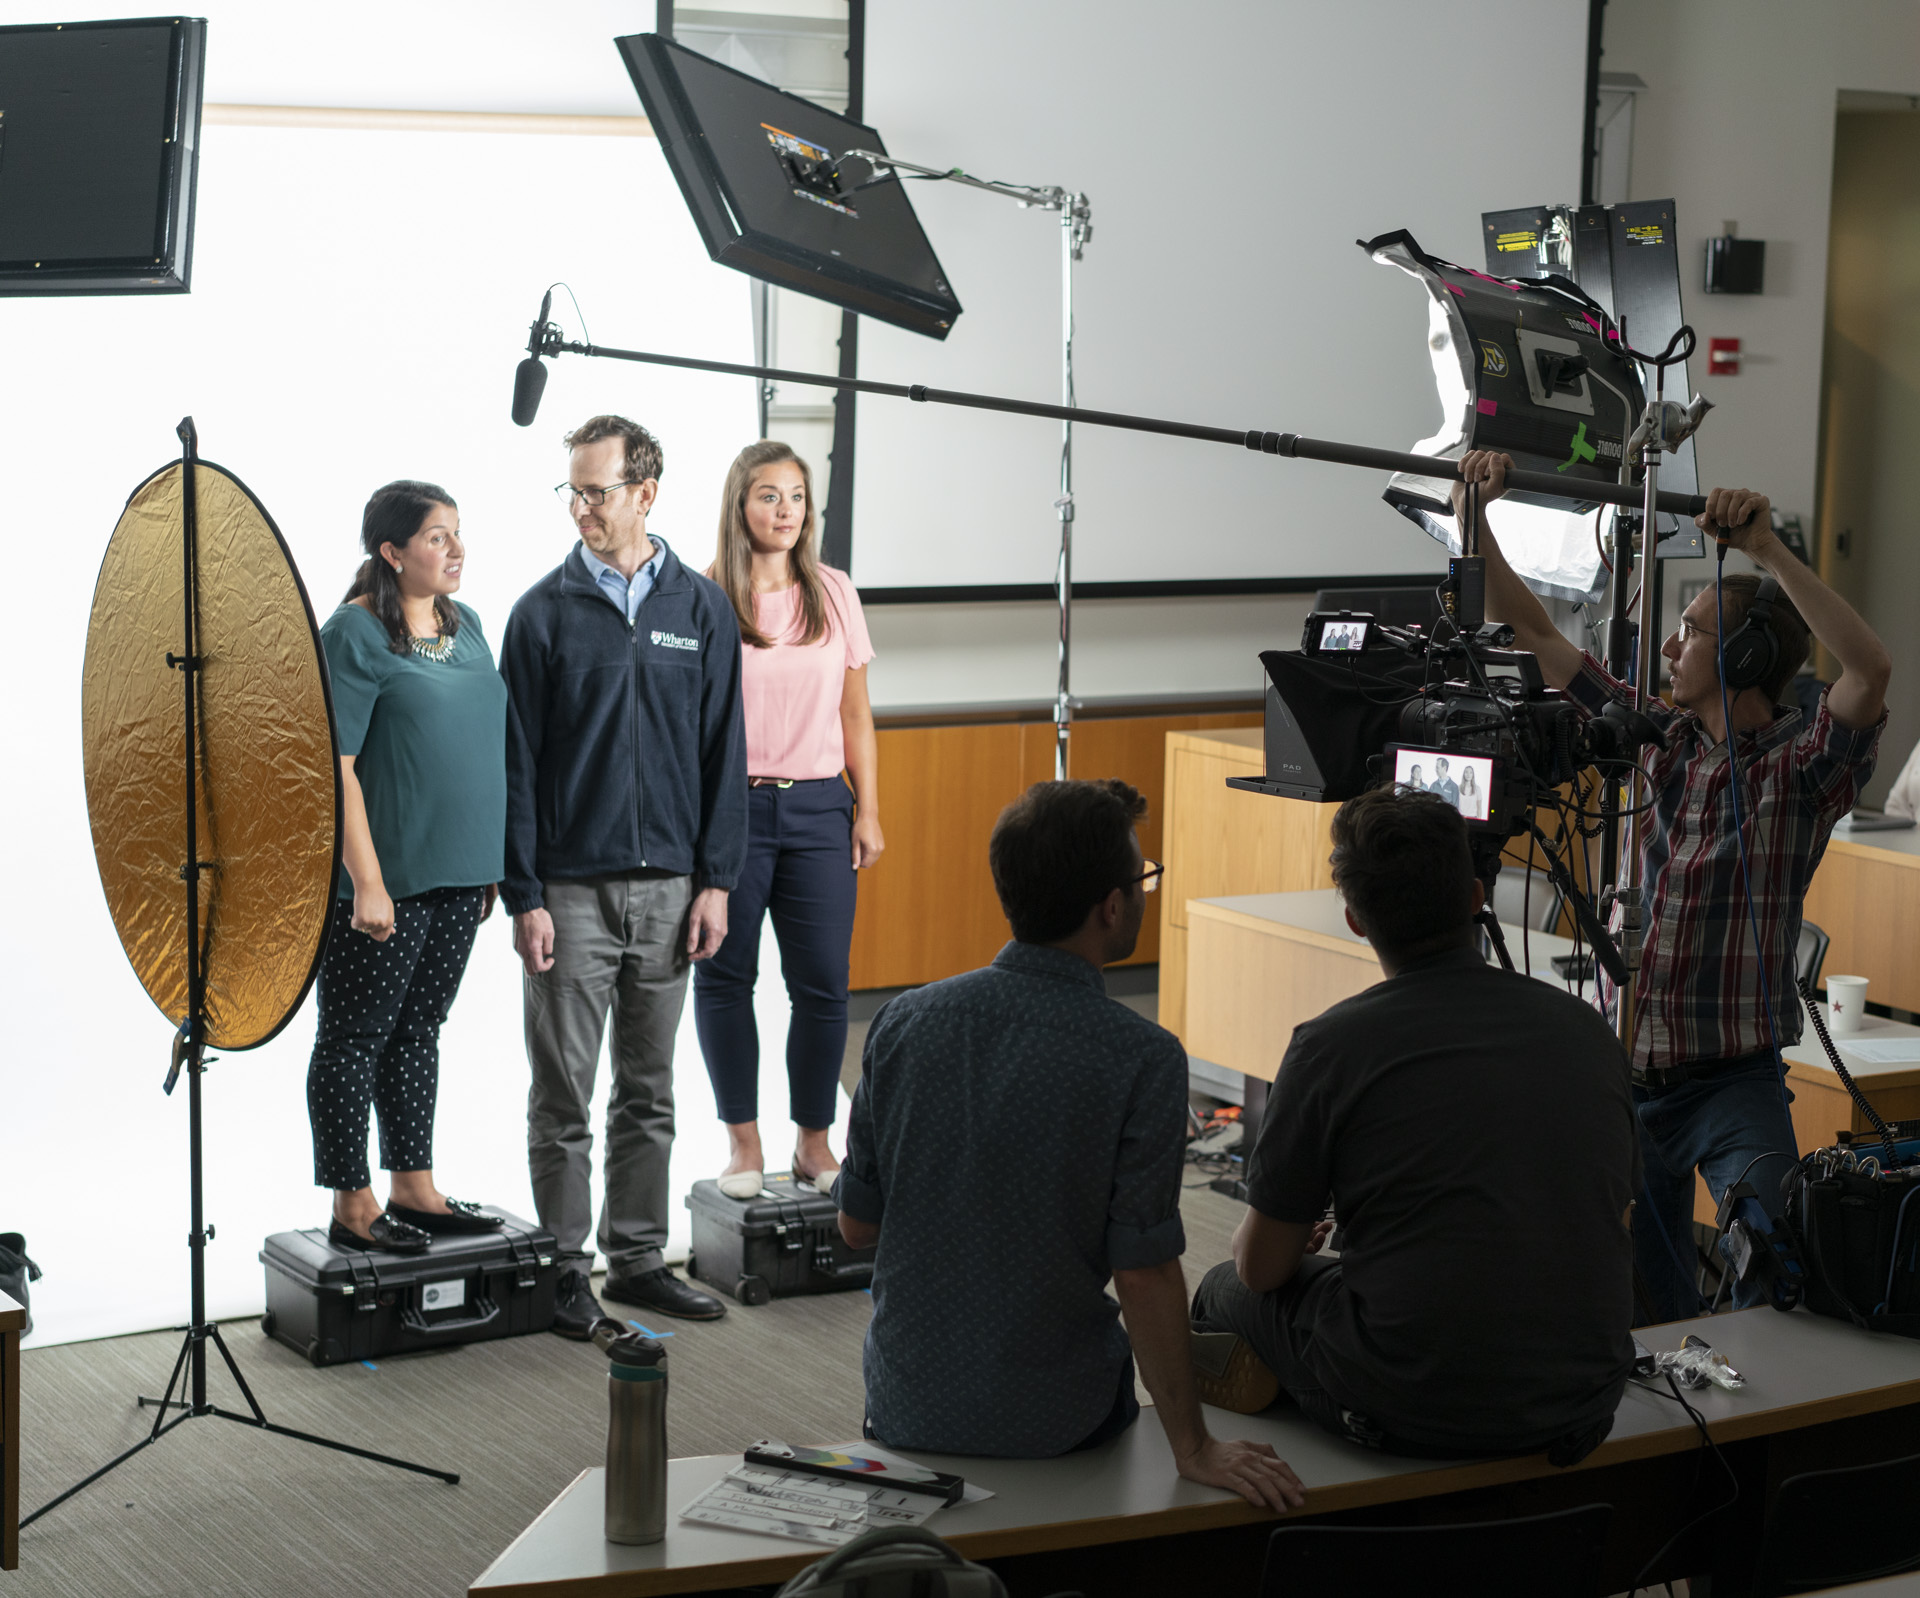 A lecture hall transformed into a video studio